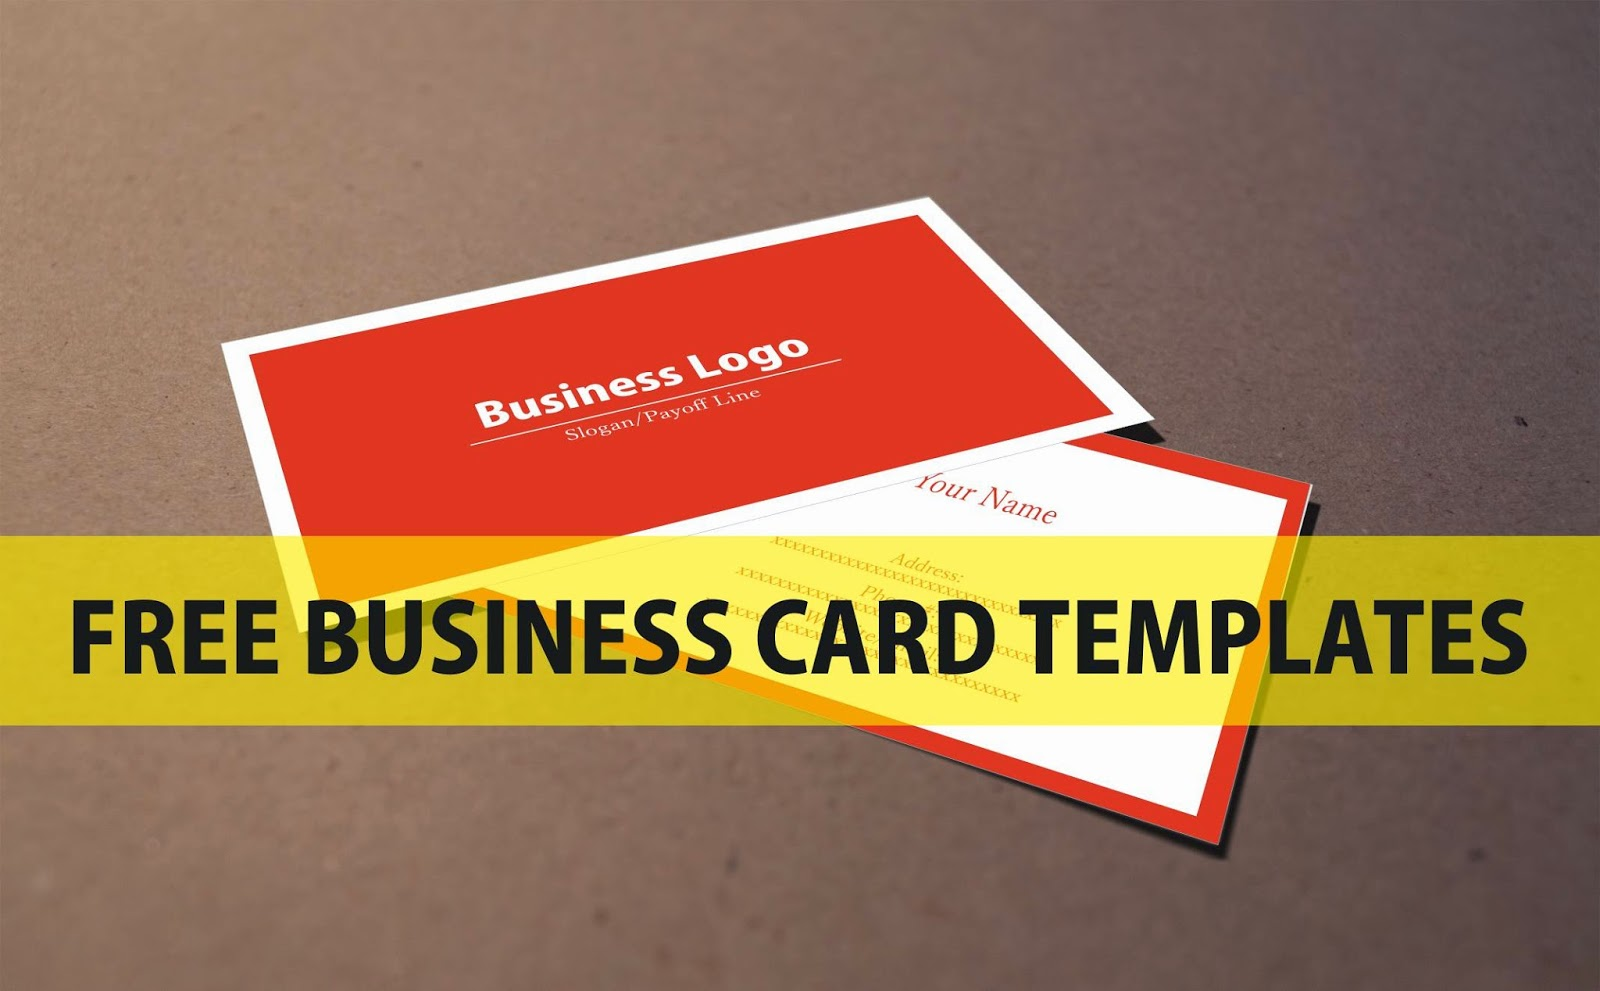 Free Business Card Template Download - CorelDraw file - A Graphic ...